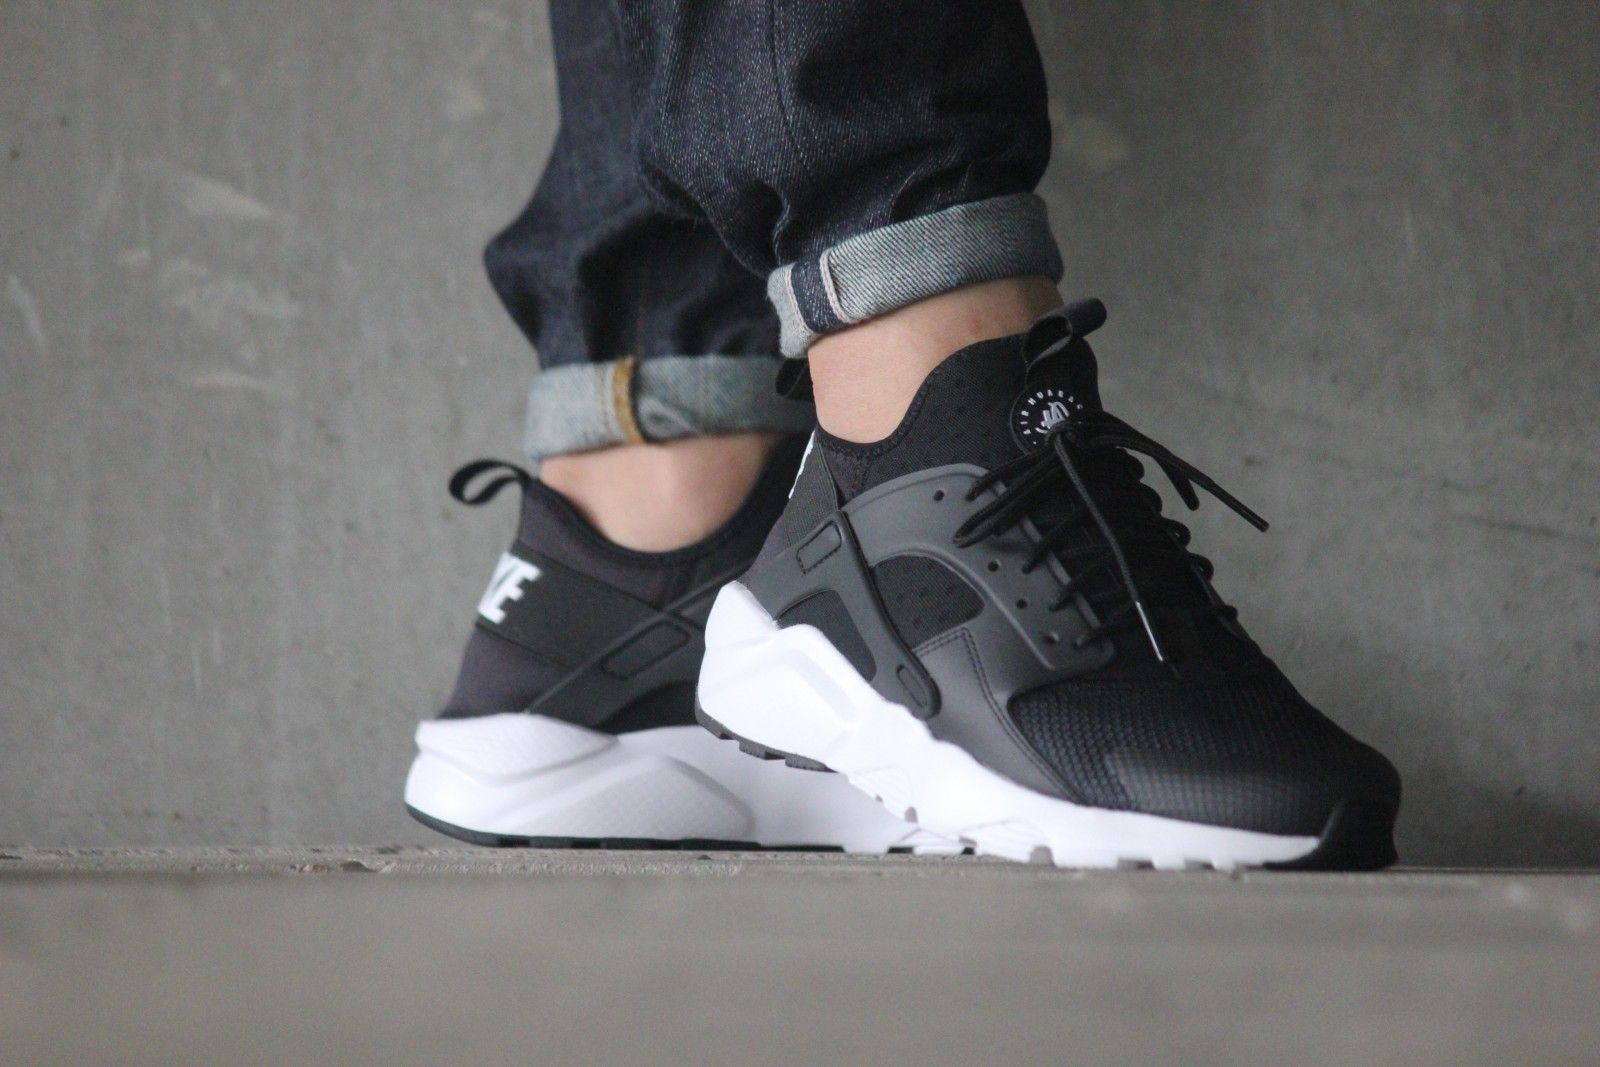 3c784a858b Nike Air Huarache Ultra Black White Anthracite - 819685-001 | Things ...